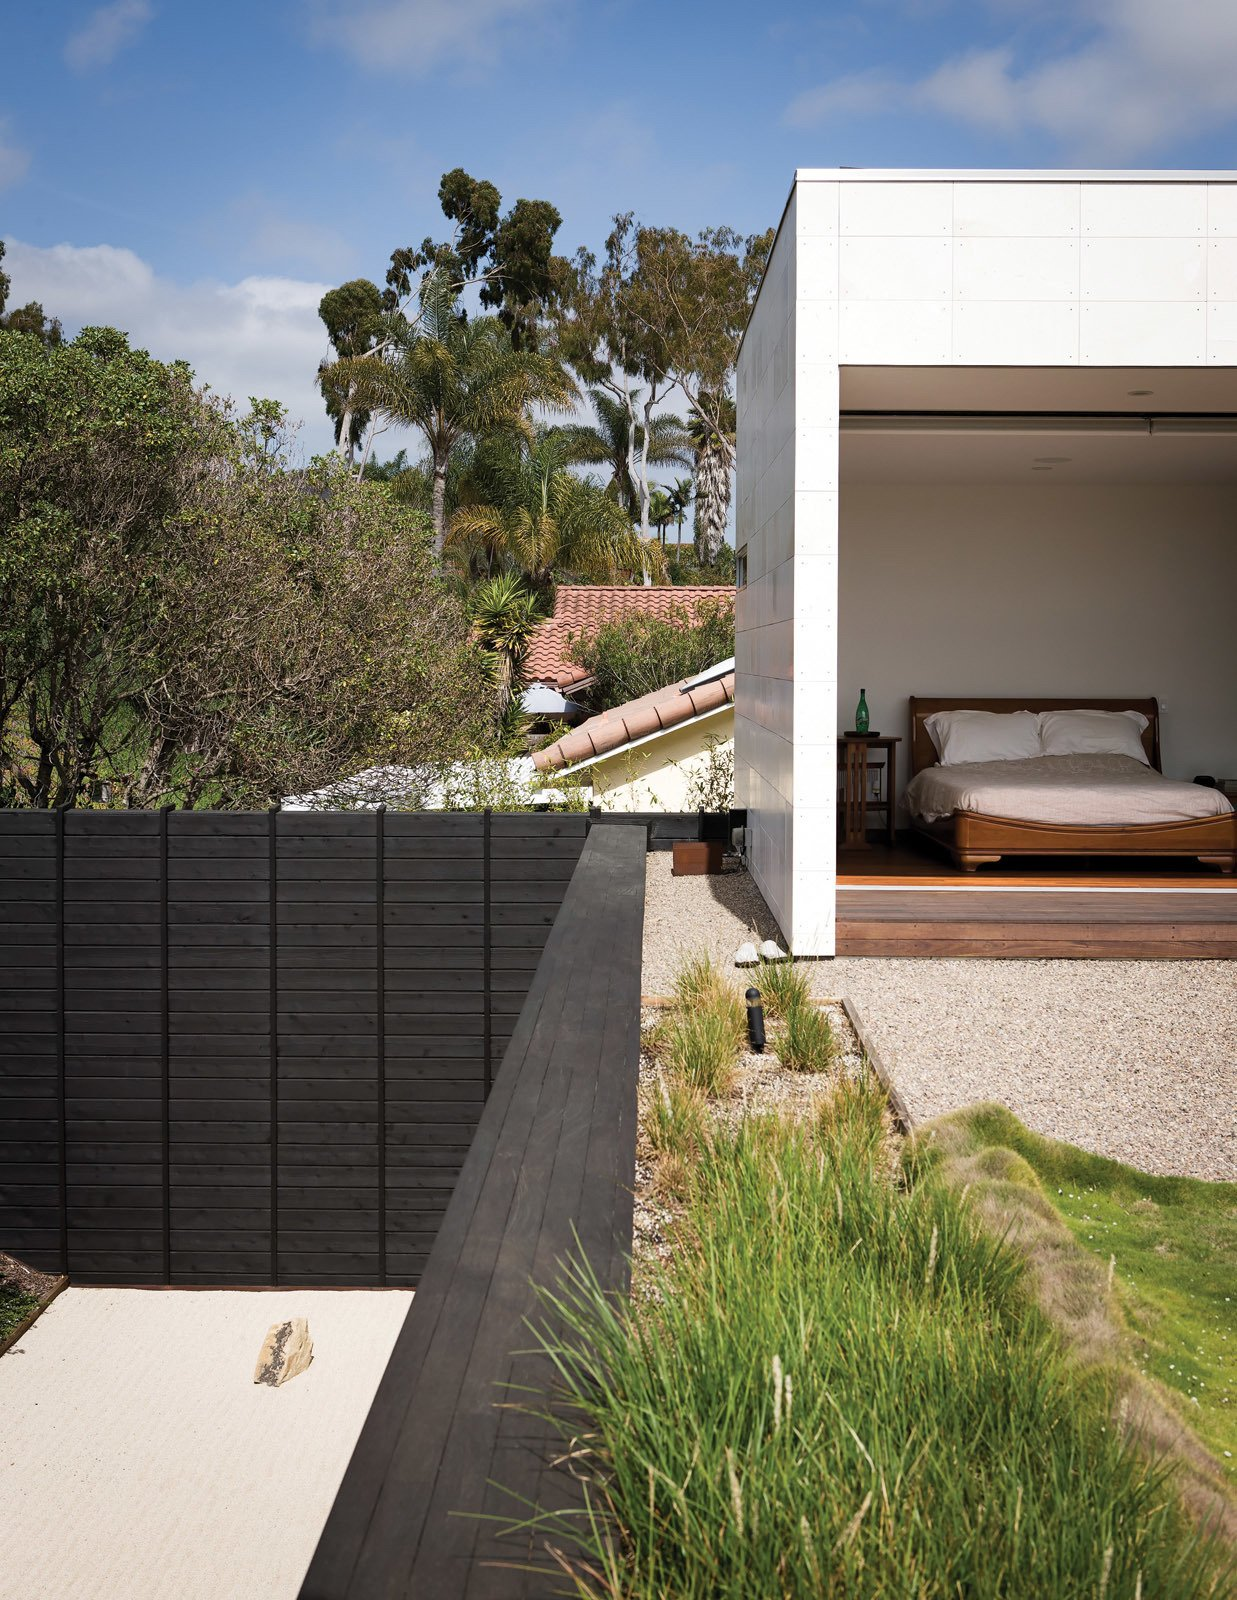 Bedroom and Bed The limestone-clad volume at the east end of the house extends to the second story, housing Shino and Ken's master suite, which opens onto the planted roof deck.  Limestone Designs in Modern Homes by Zachary Edelson from An Atypical Modern Home in Southern California